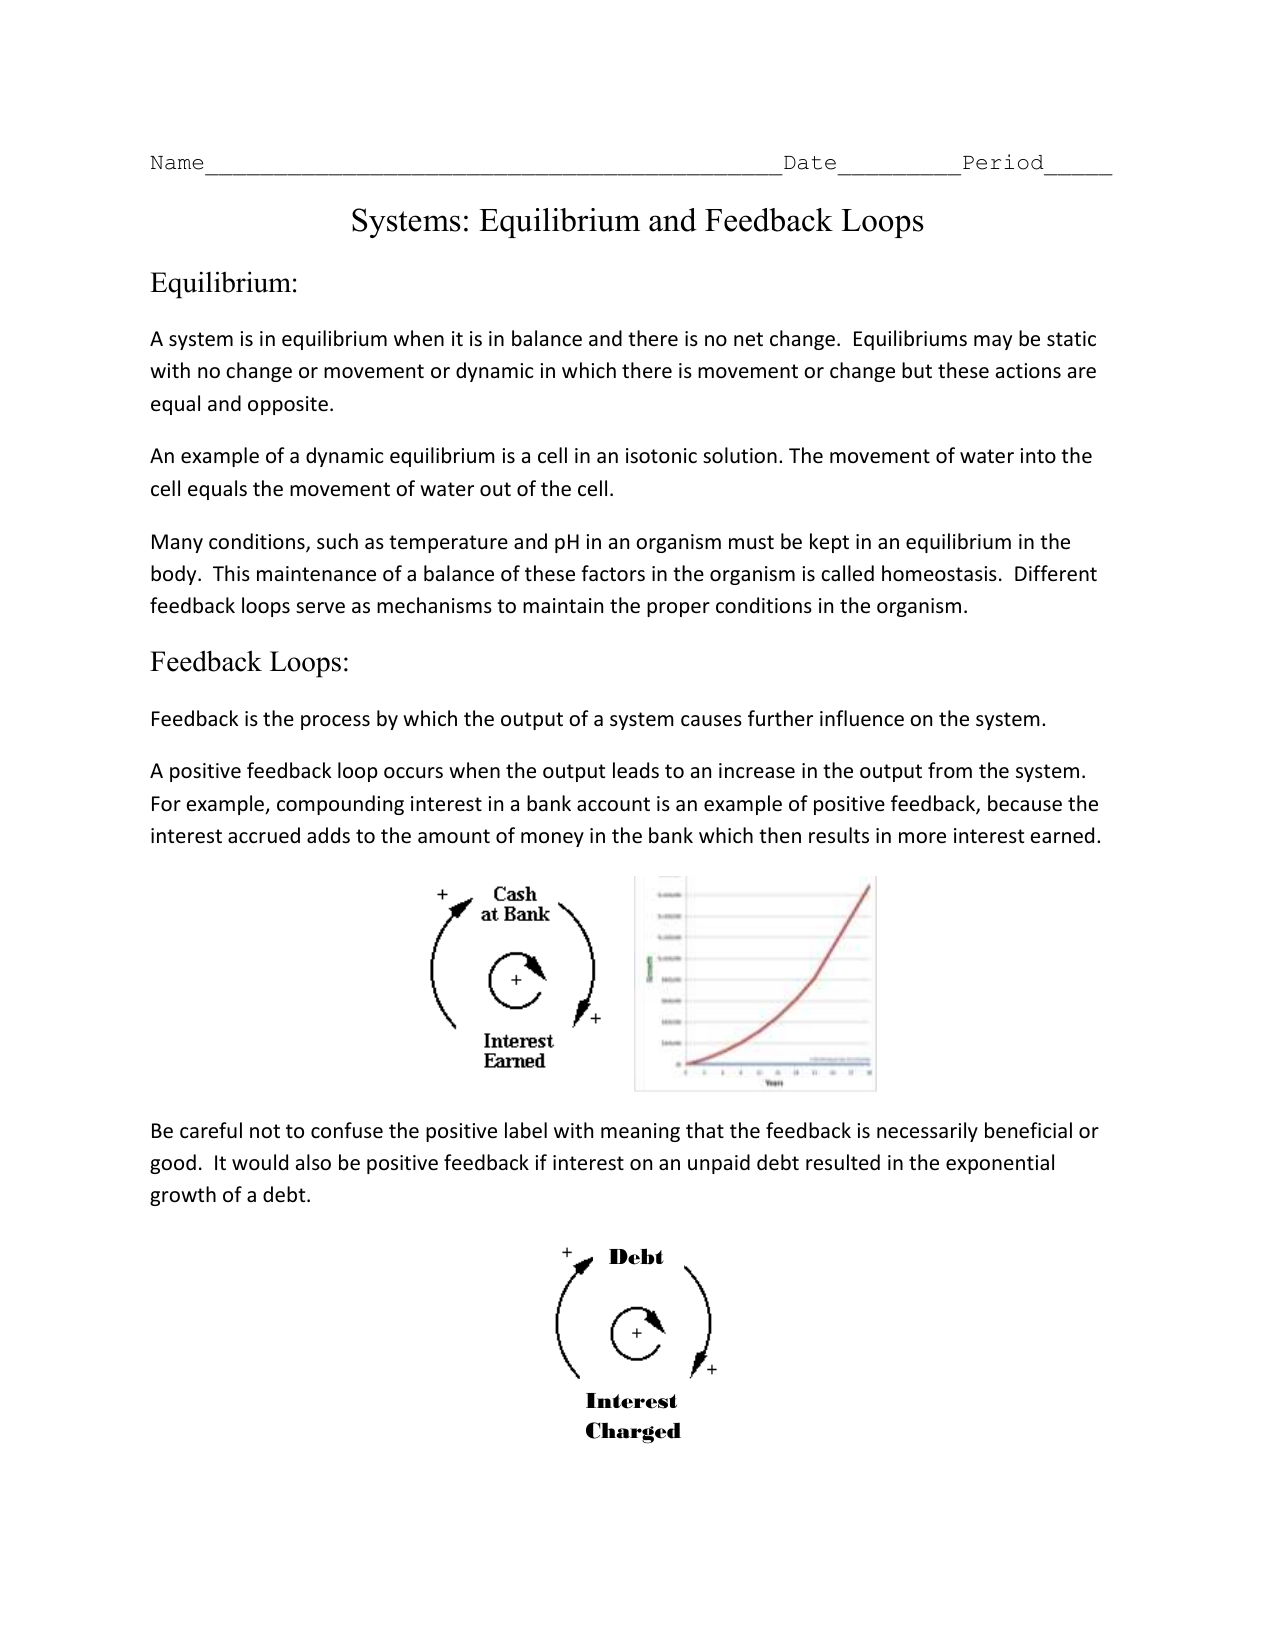 examples of static and dynamic equilibrium